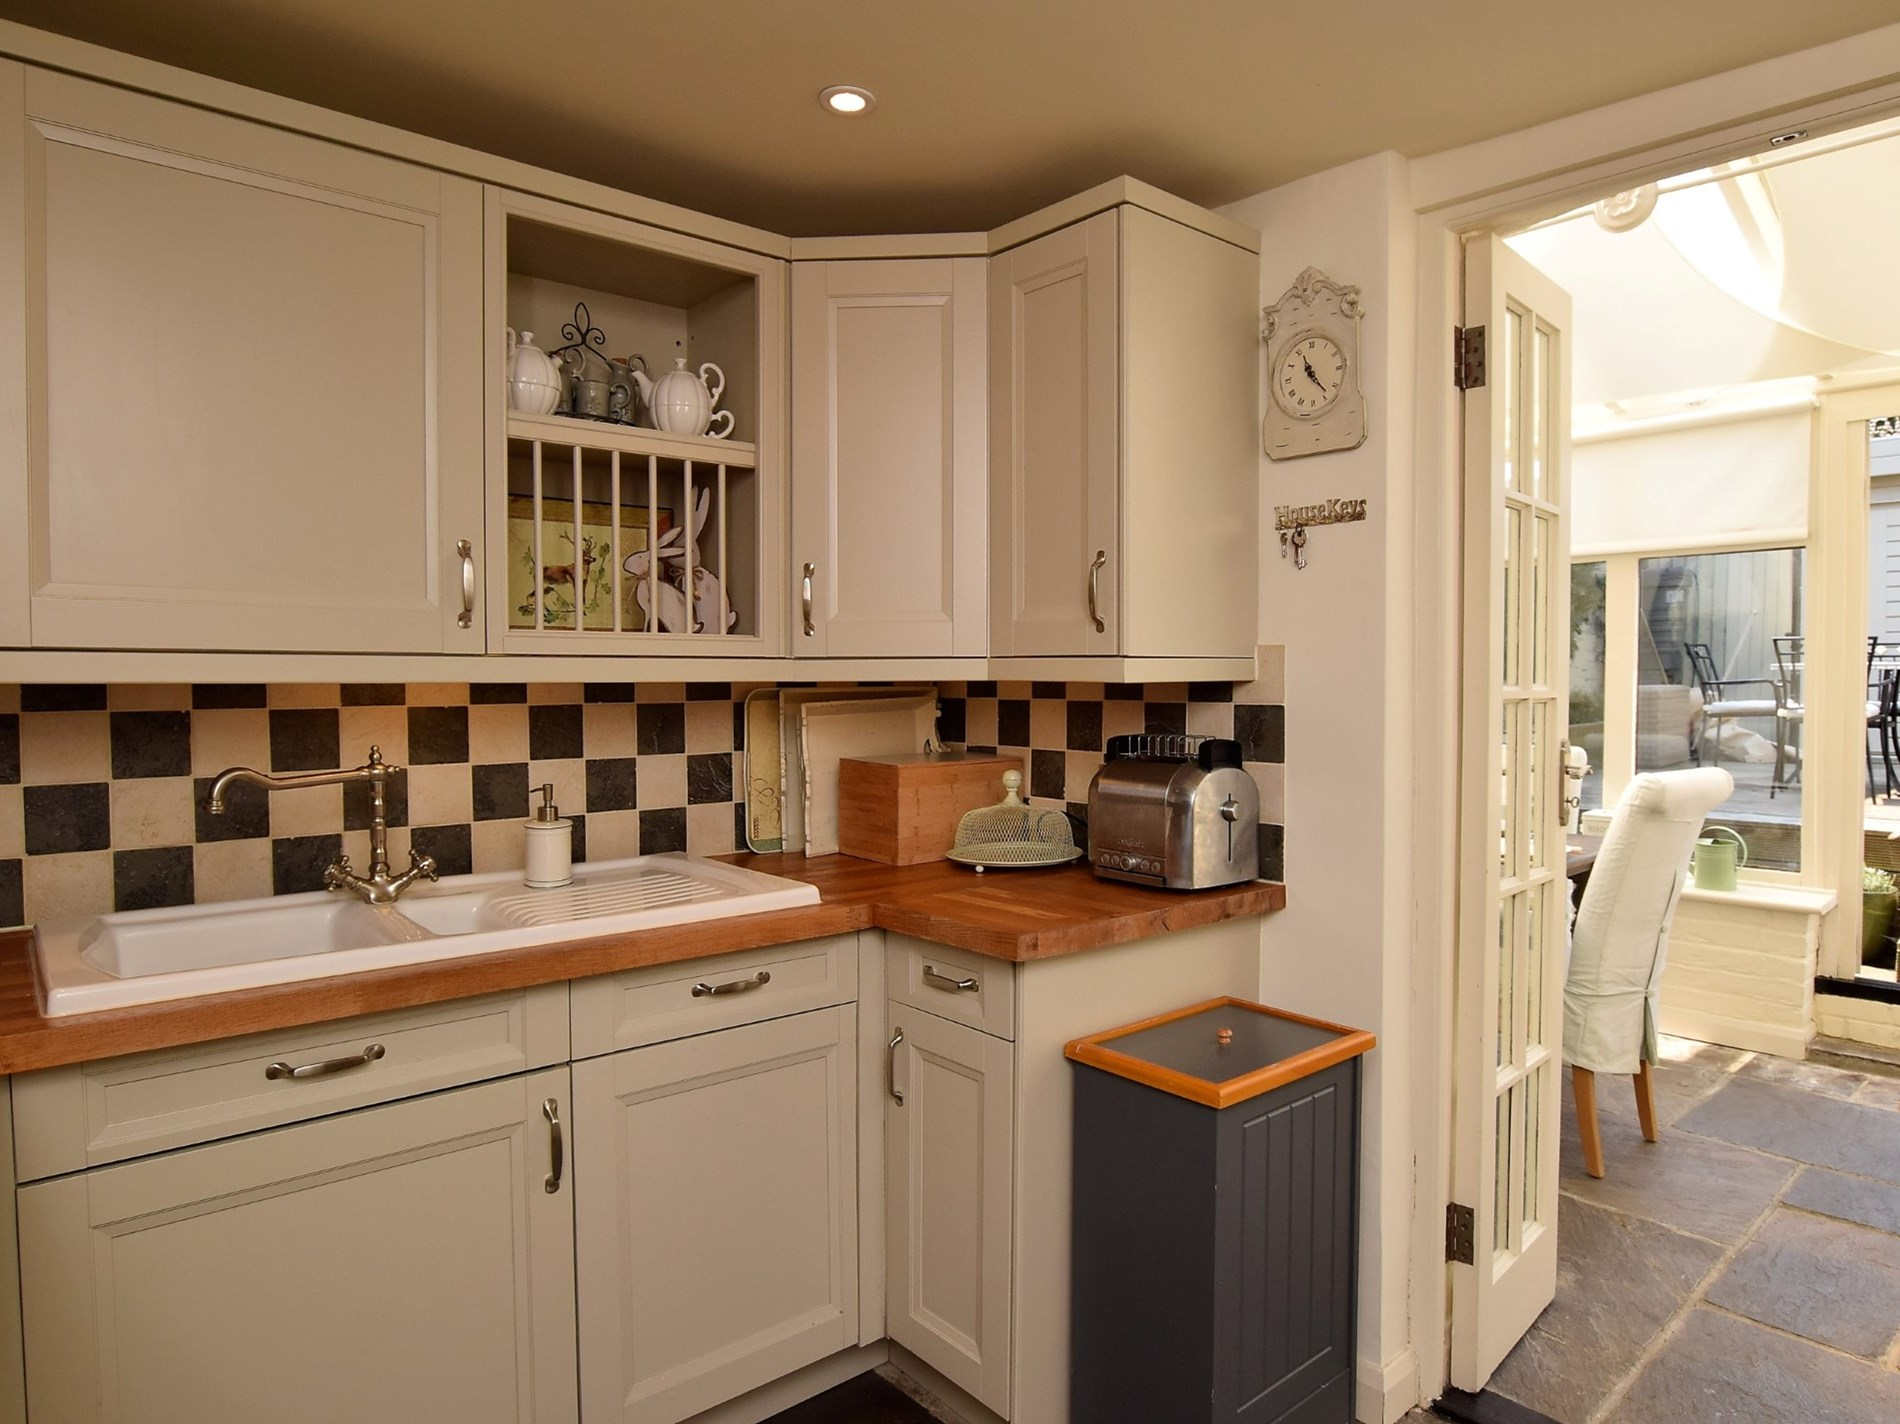 The kitchen leads out into the conservatory